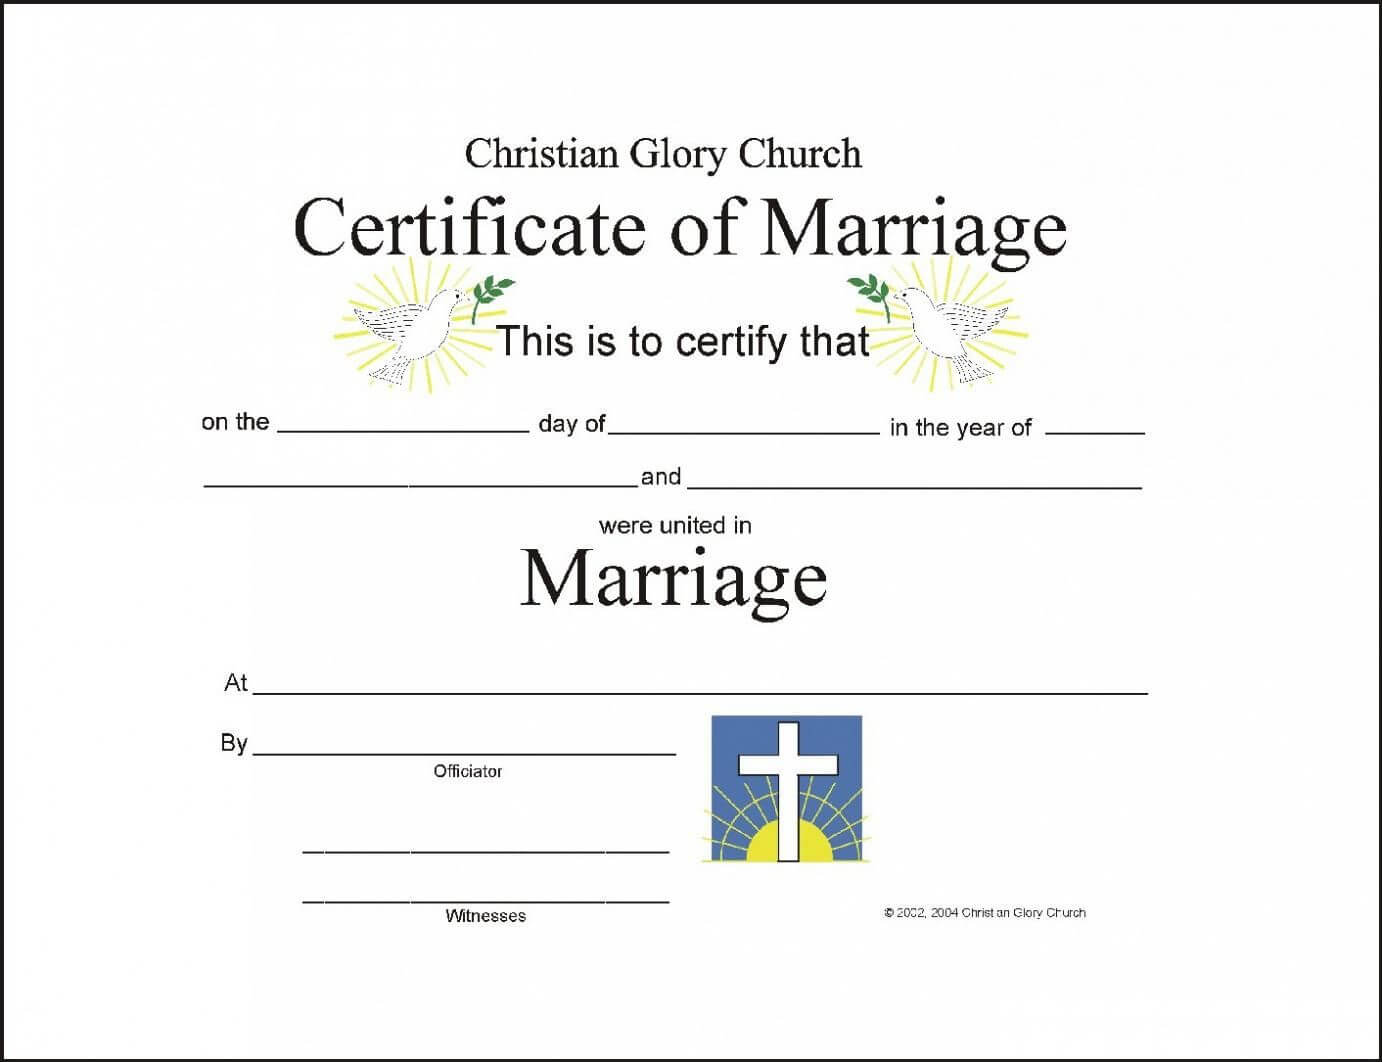 Christian Wedding Certificate Sample - Google Search Within Christian Certificate Template